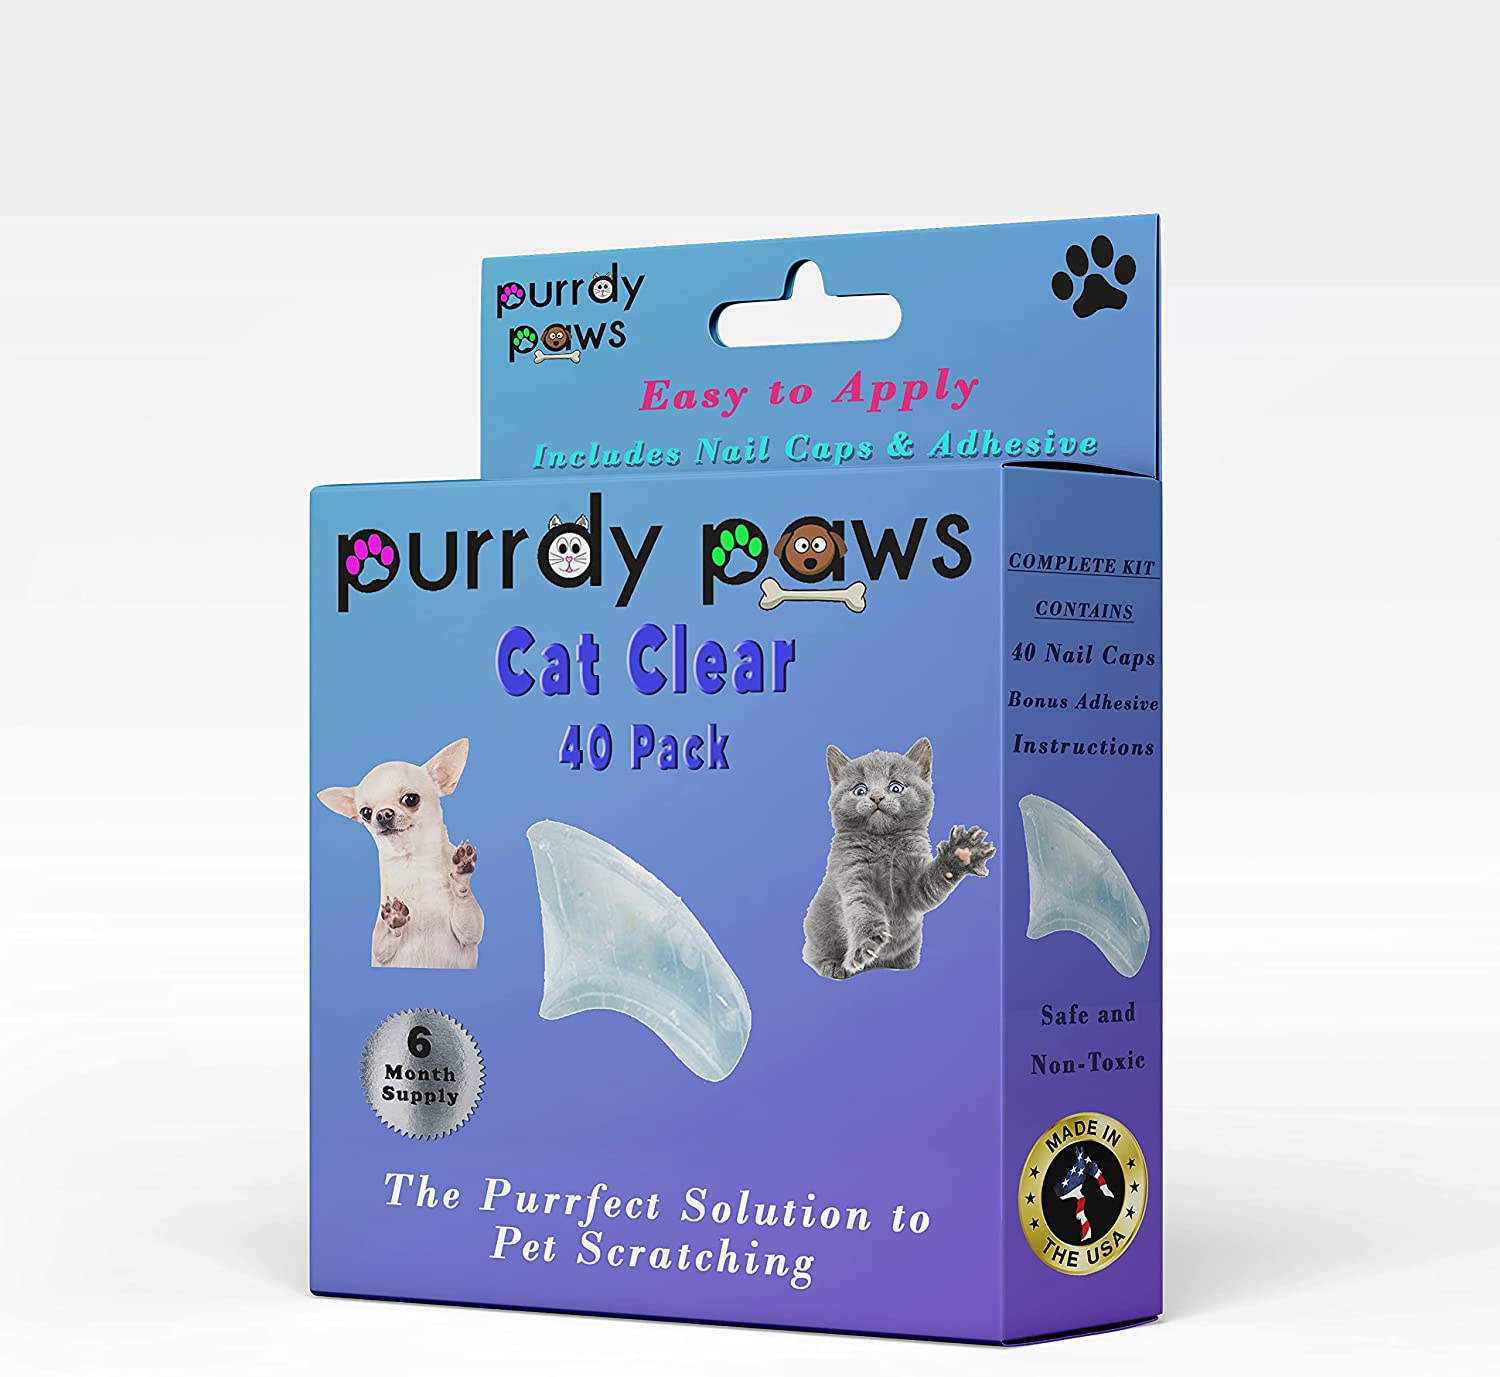 Purrdy Paws Clear Soft Nail Caps for Ext Store Supply Opening large release sale Month - Cats 6